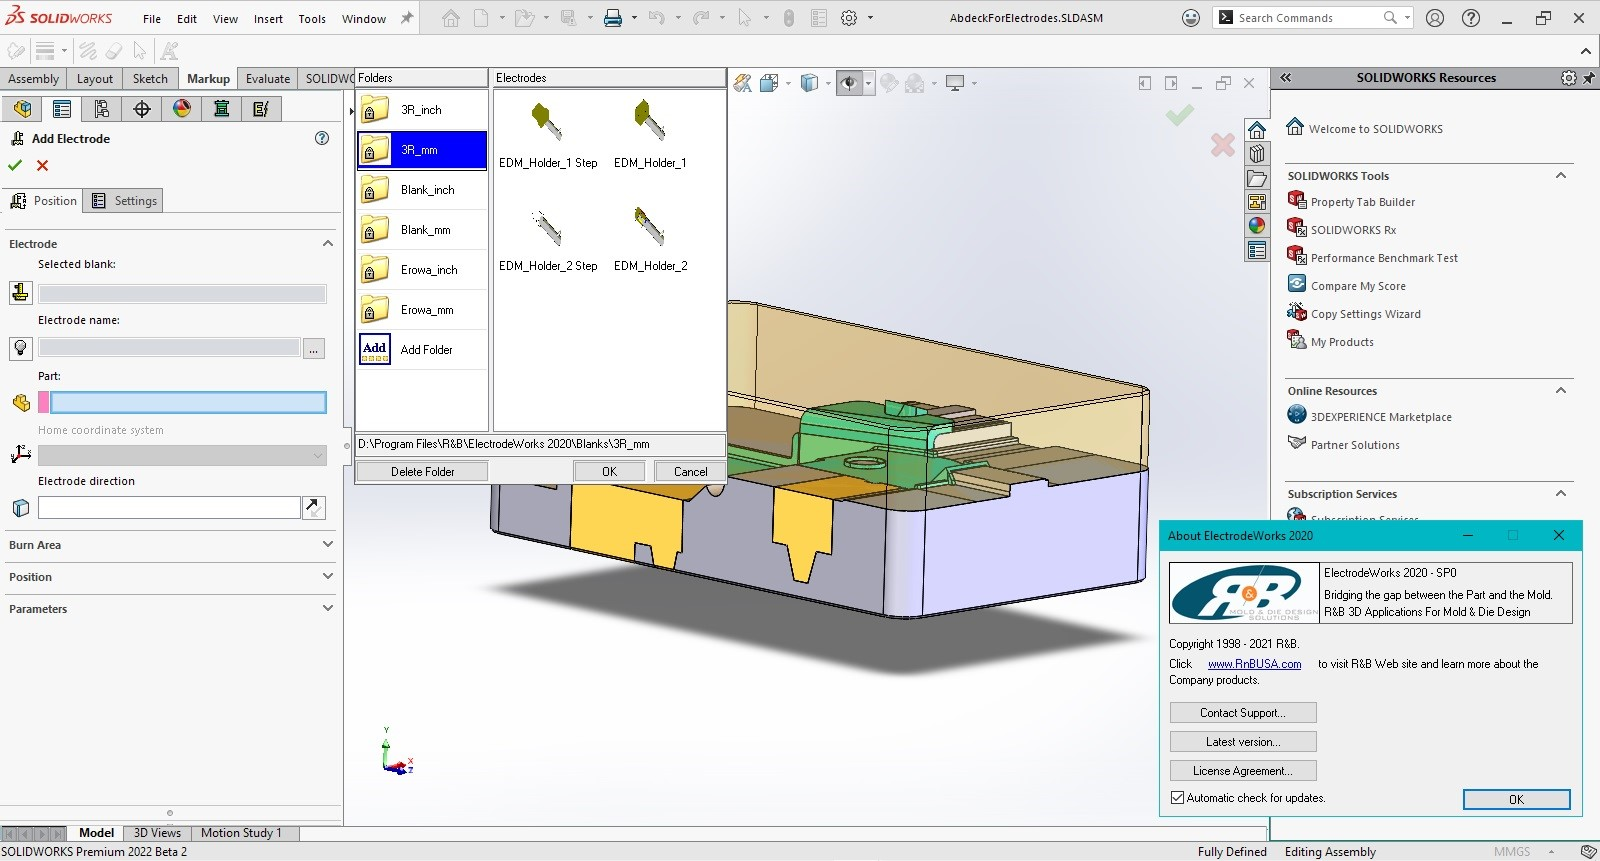 Working with R&B ElectrodeWorks 2020 SP0 for SolidWorks 2015-2022 Win64